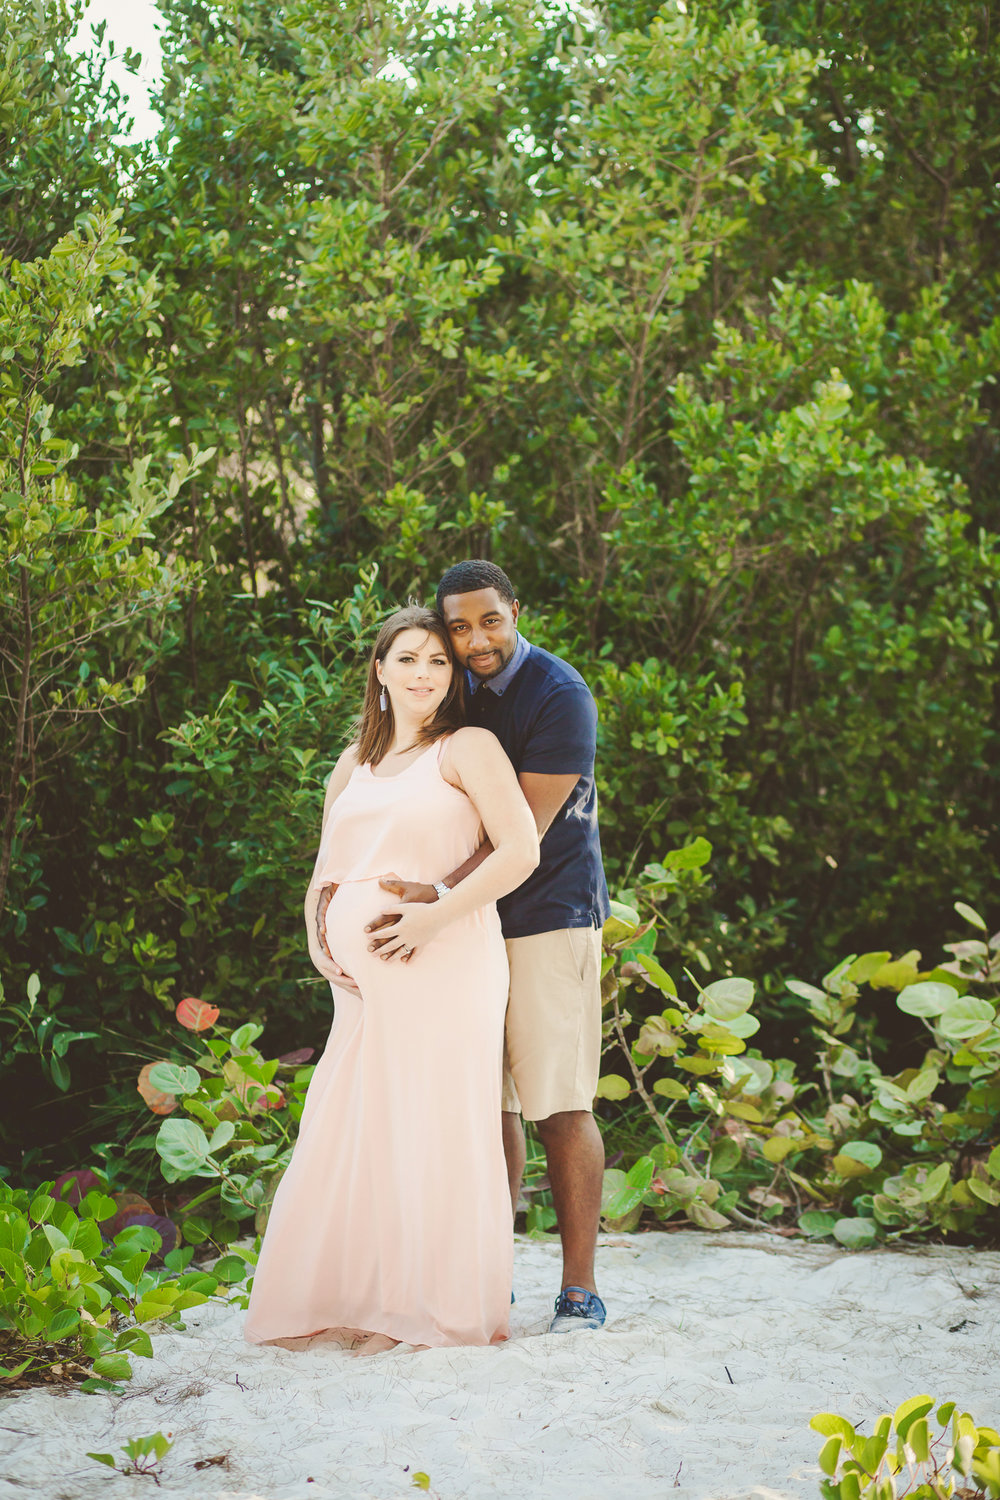 Tampa maternity photographer photography pregnancy photos.jpg